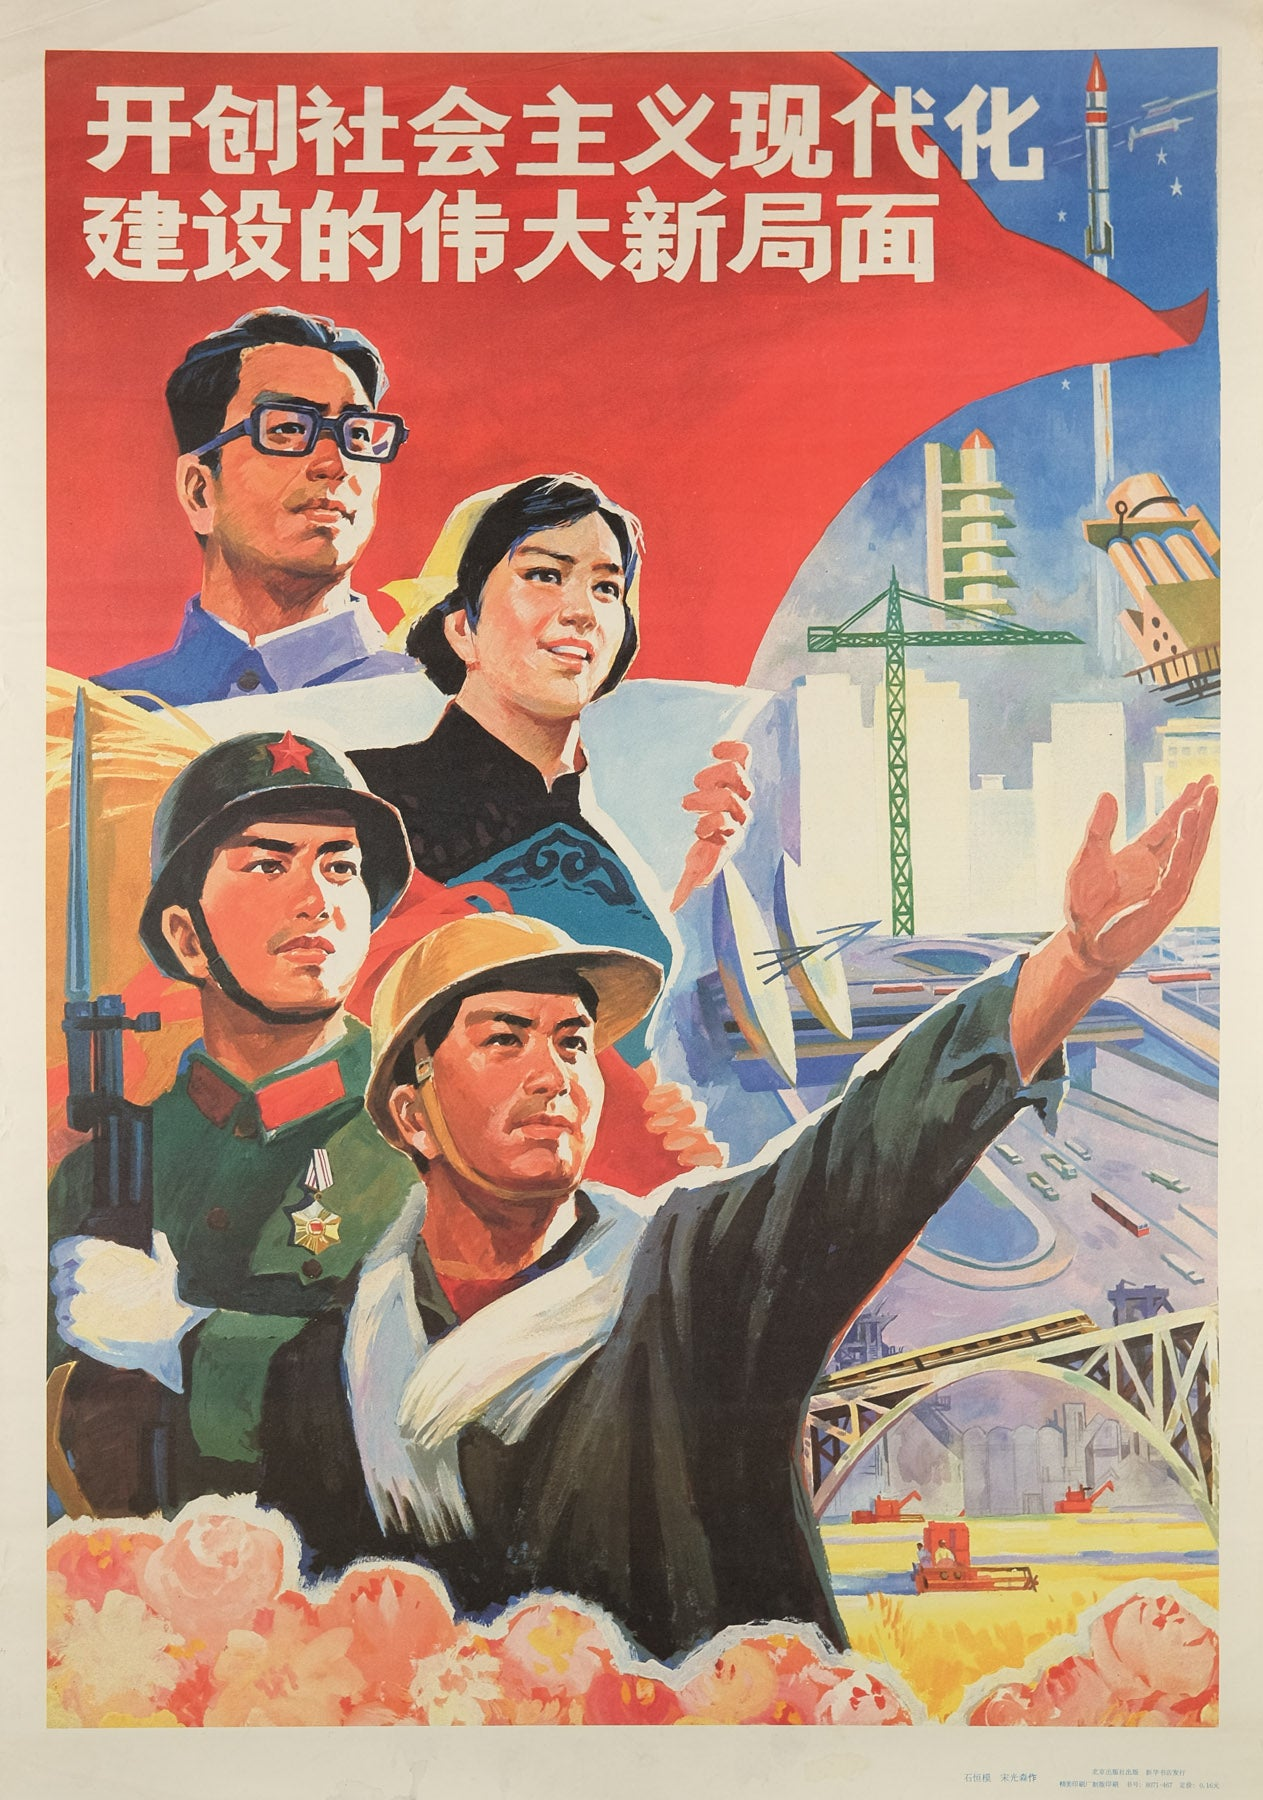 image of the original vintage 1980 Chinese communist propaganda poster titled Launch the mighty new phase